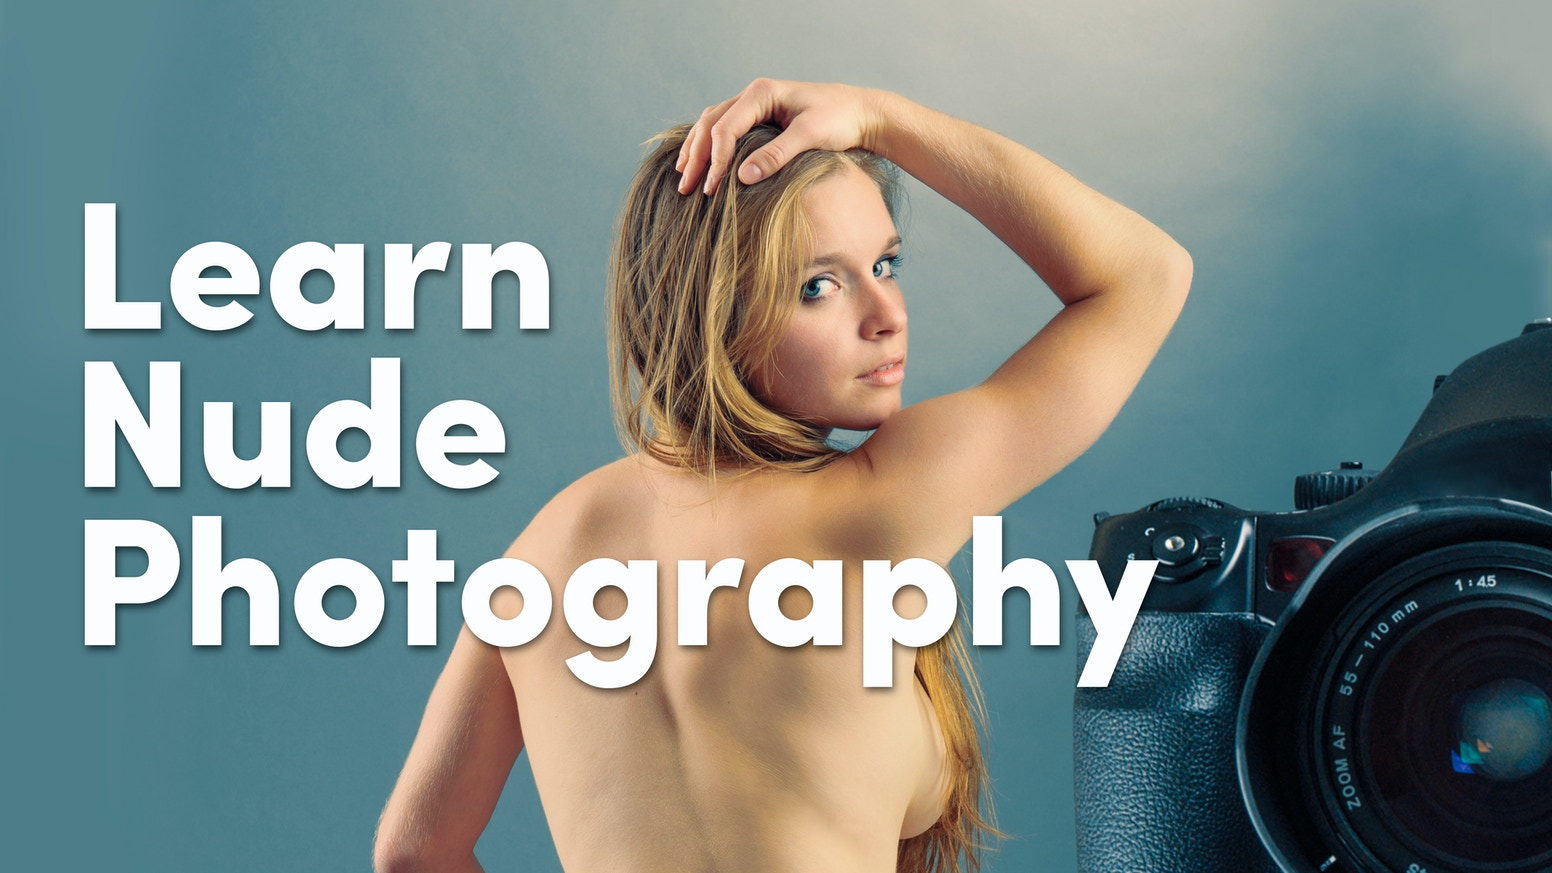 Nude photography with almost any camera. Find models, build a portfolio, light, direct shoots~Four book step-by-step instructional set.